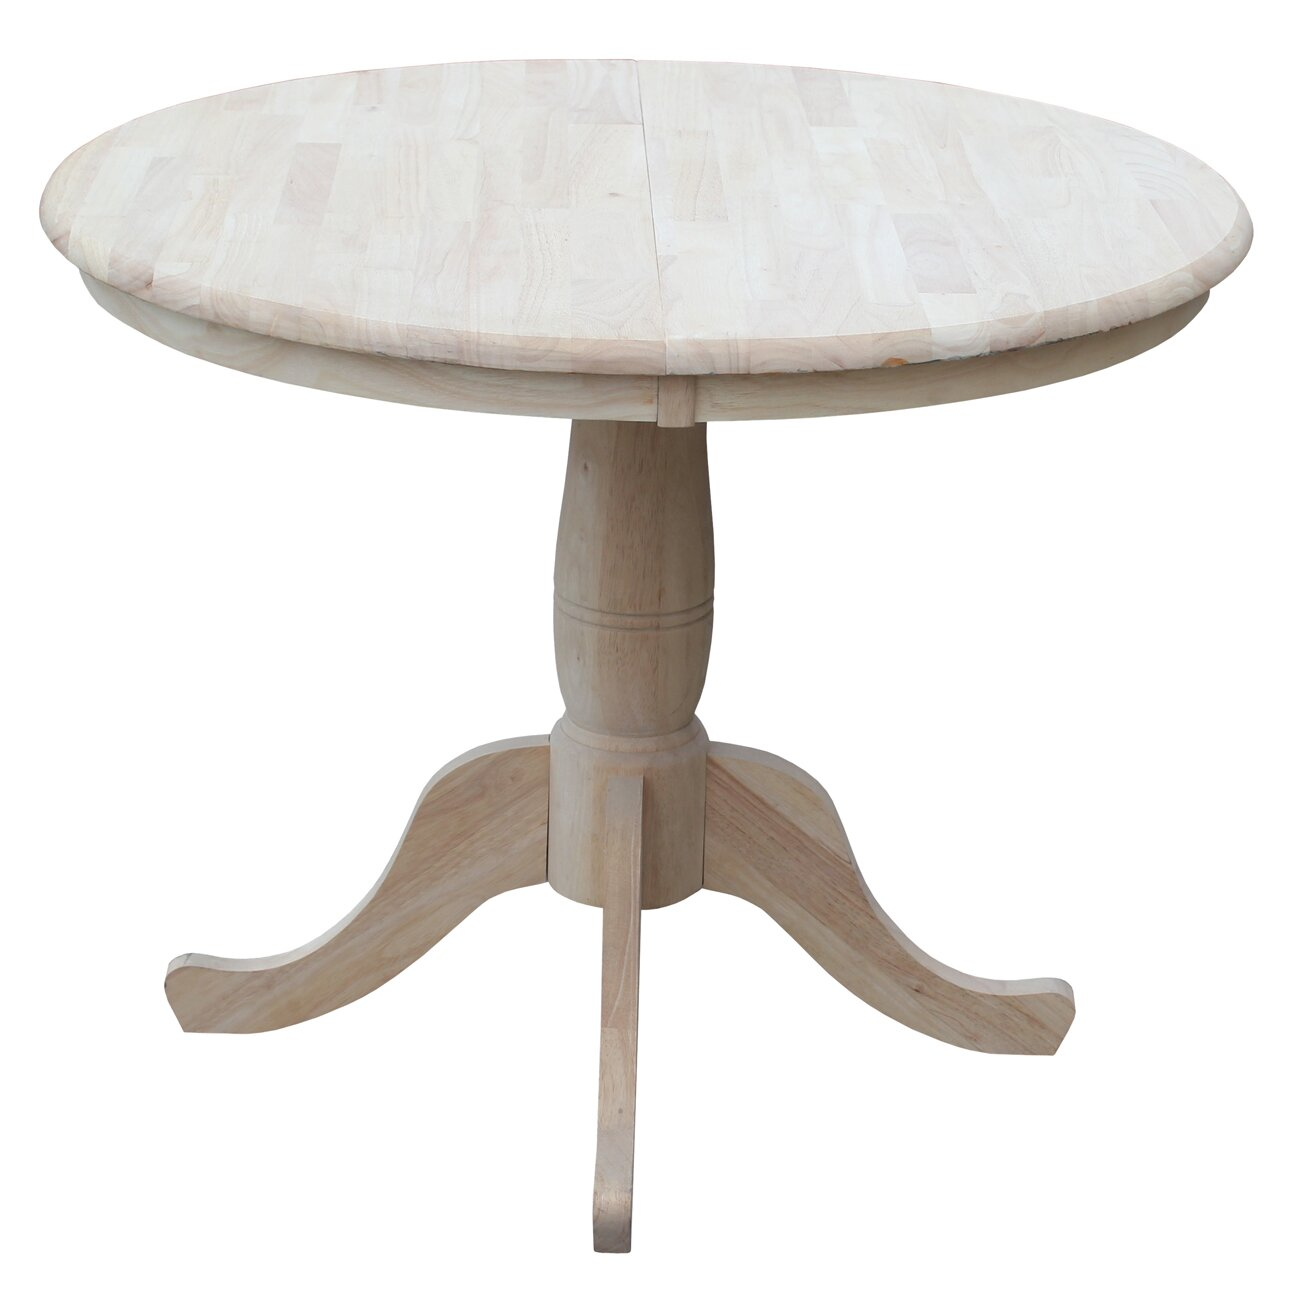 August grove 36 extendable round pedestal dining table for Table induction 90 cm